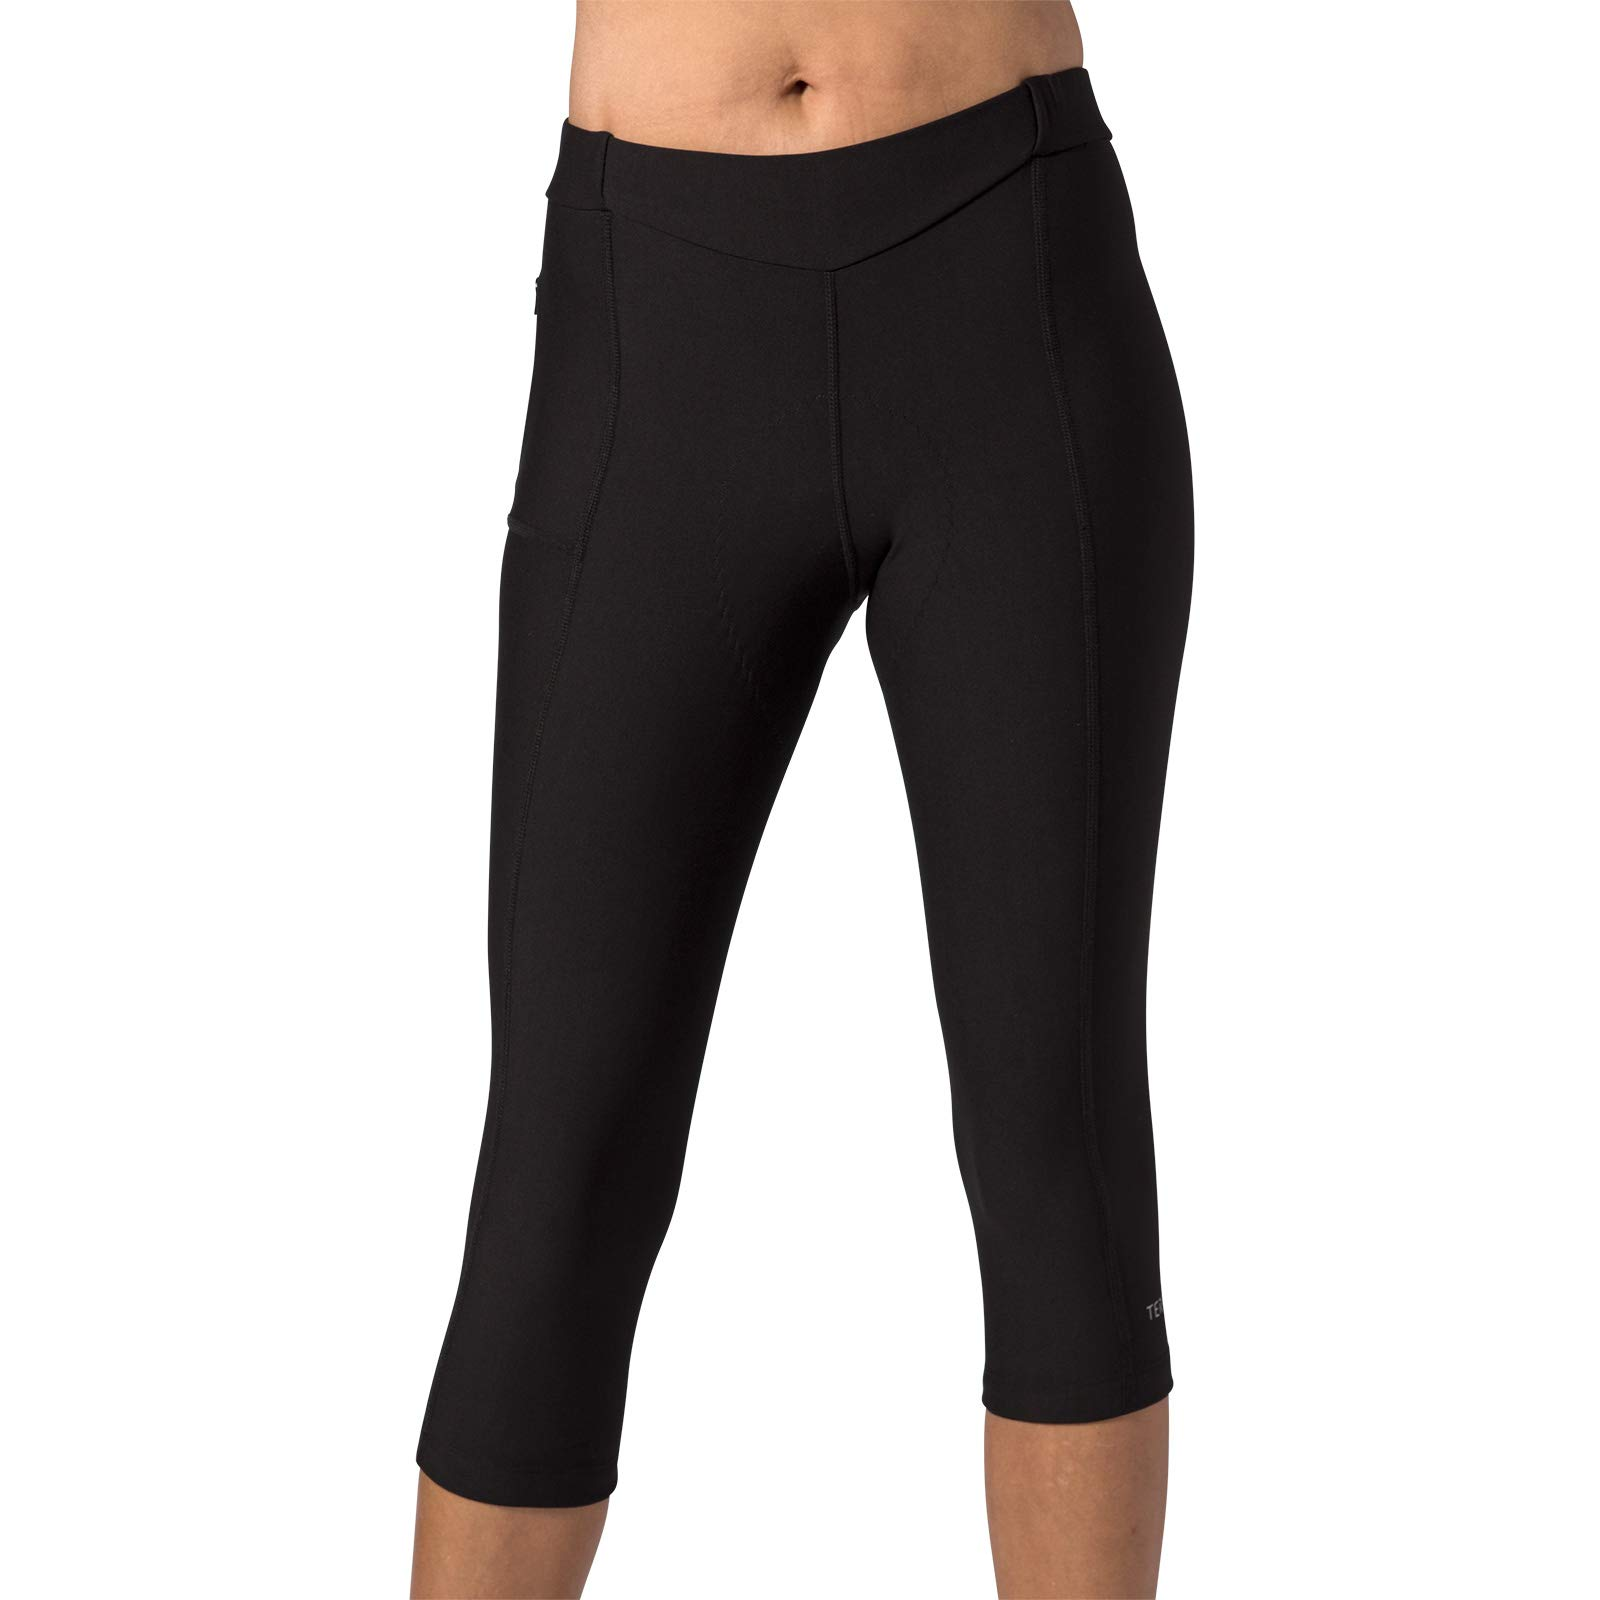 Terry Cycling Knickers for Women - Bike Bottoms for All-Season Riding - Black - Small by Terry